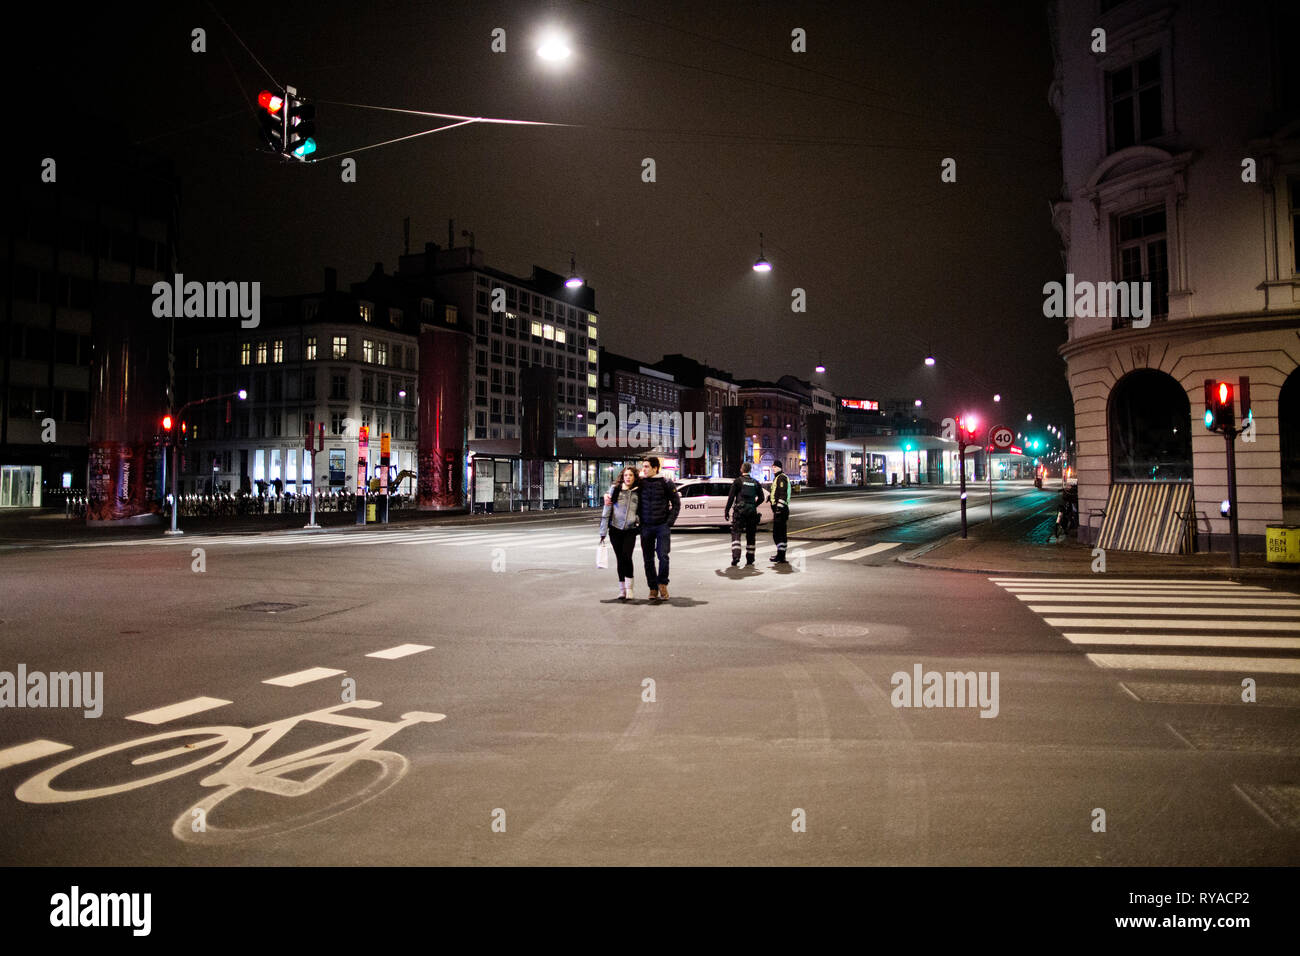 Denmark, Copenhagen - February 15, 2015. Armed Danish police officers patrol the streets at Nørreport in central Copenhagen after the terror attacks on Saturday. Later Sunday morning the shooting suspect was shot dead around 04.50 AM at Svanevej. (Photo credit: Kenneth Nguyen - Gonzales Photo). Stock Photo